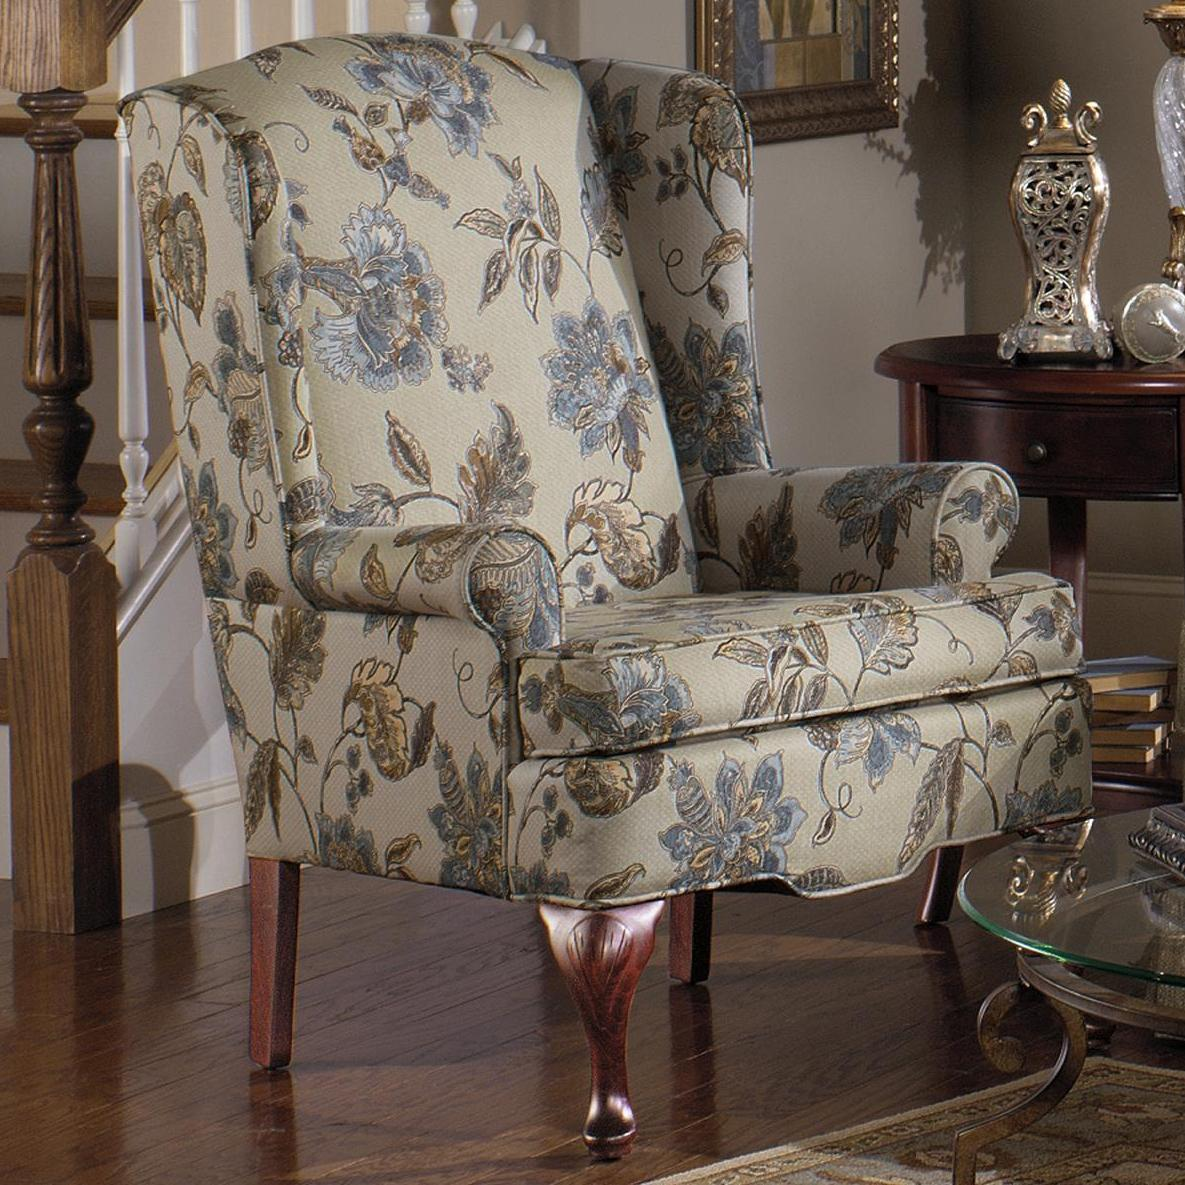 375  Upholstered Wing Chair by Craftmaster at Esprit Decor Home Furnishings